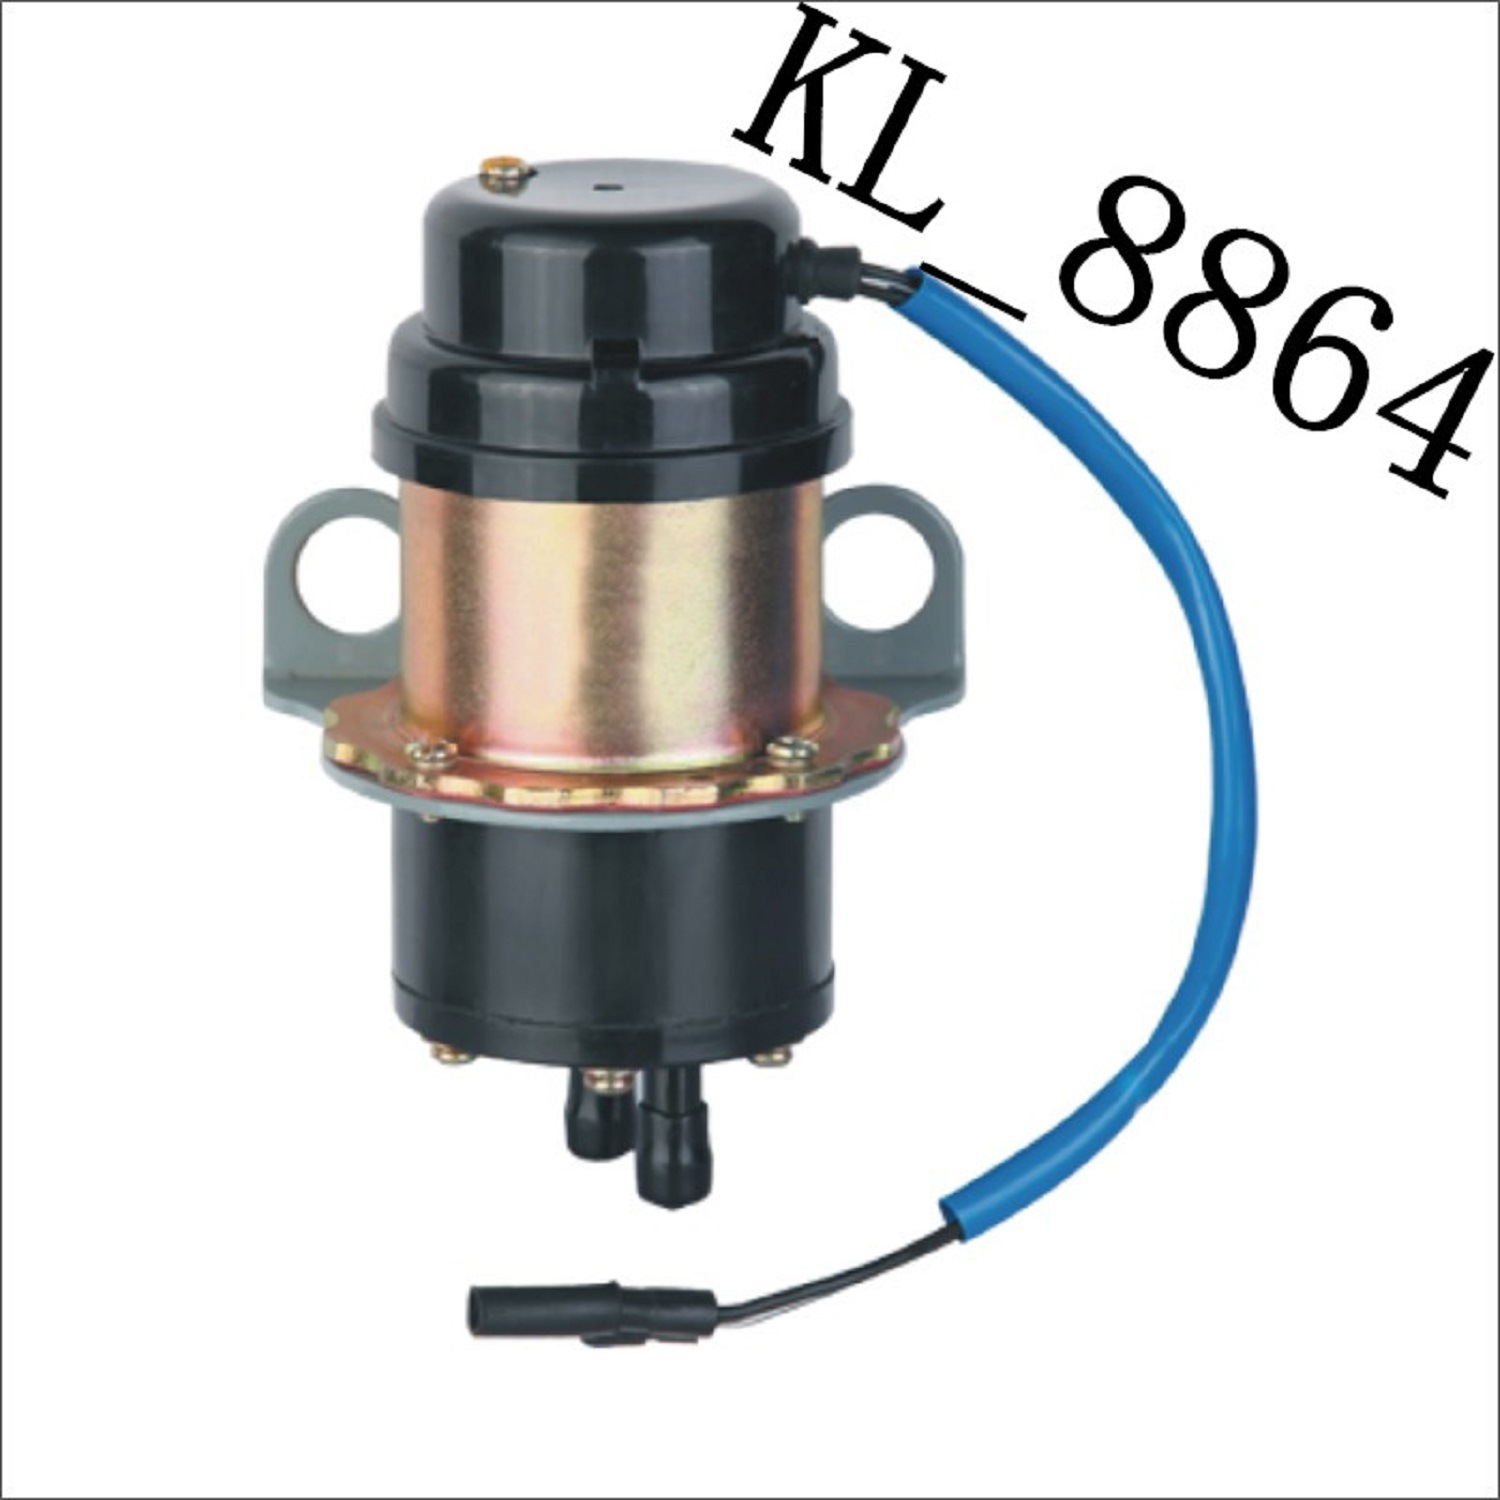 Low Pressure Electronic Fuel Pump for Toyota (UC-J7/16700-PC1-003/16700-PC1-013) with Kl-8864